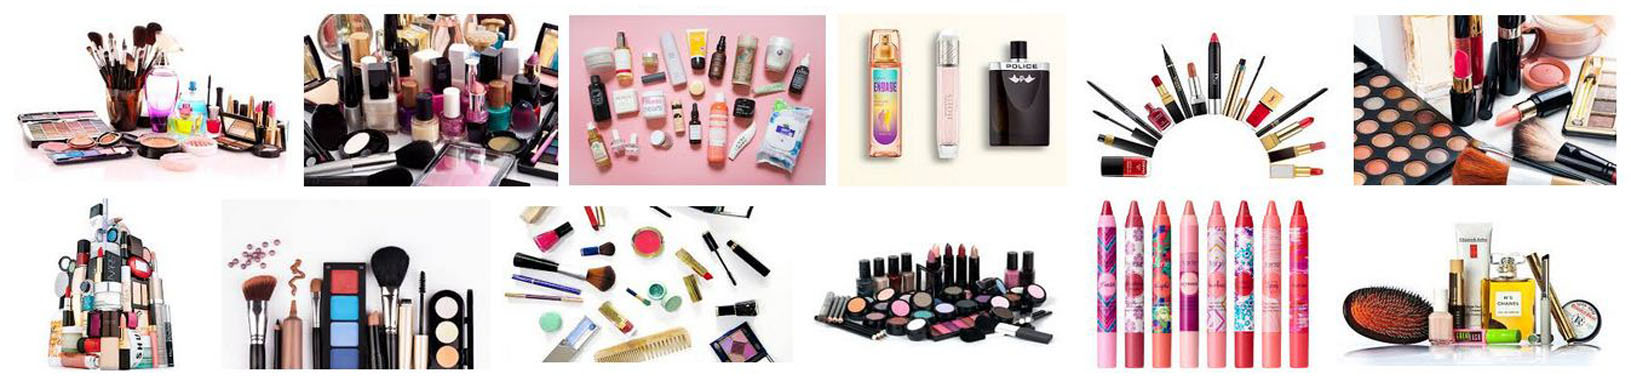 Cosmetics, Hair Products, Creams and More...